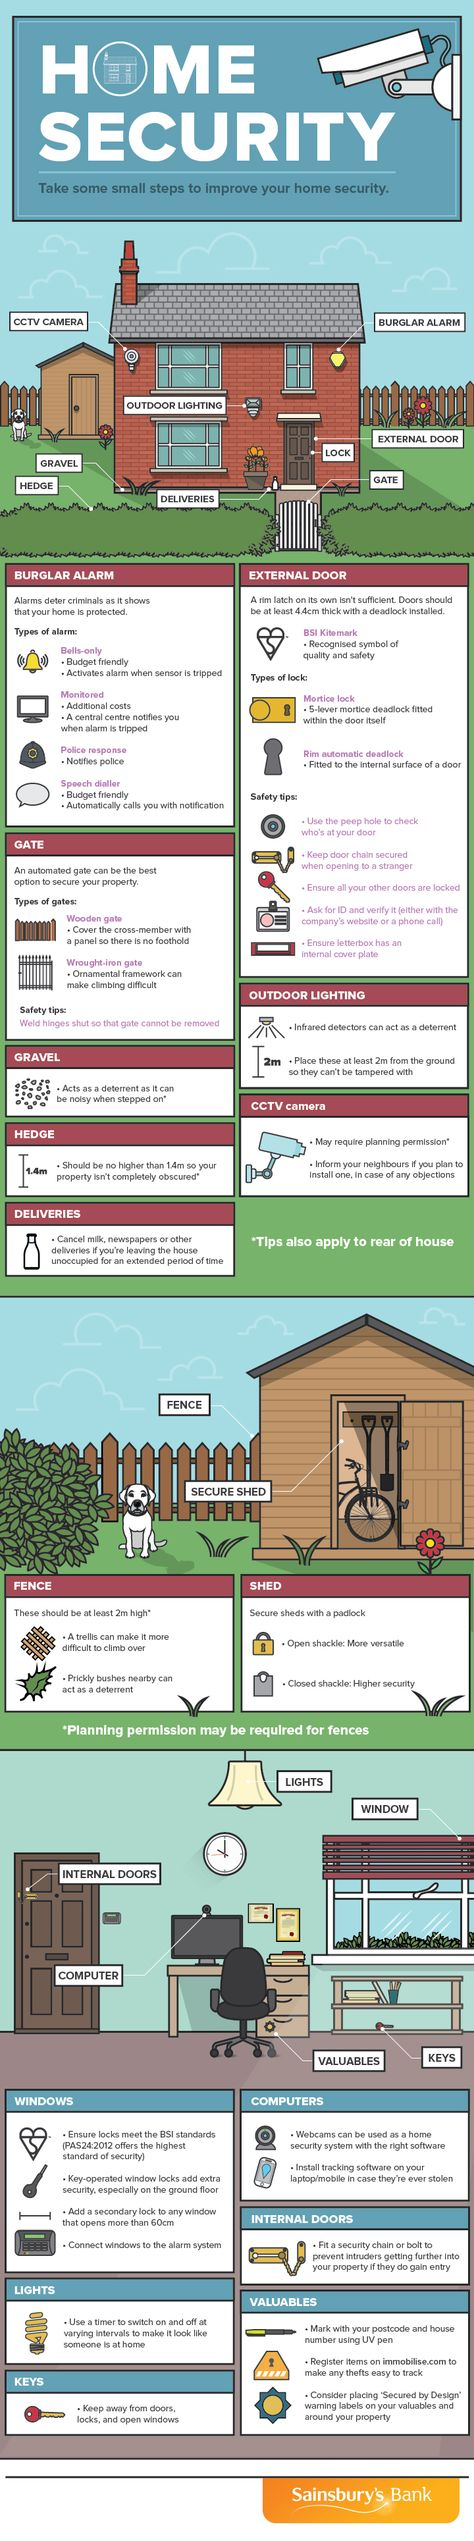 Take Some Small Steps to Improve Your Home Security #infographic #HomeImprovement #Security